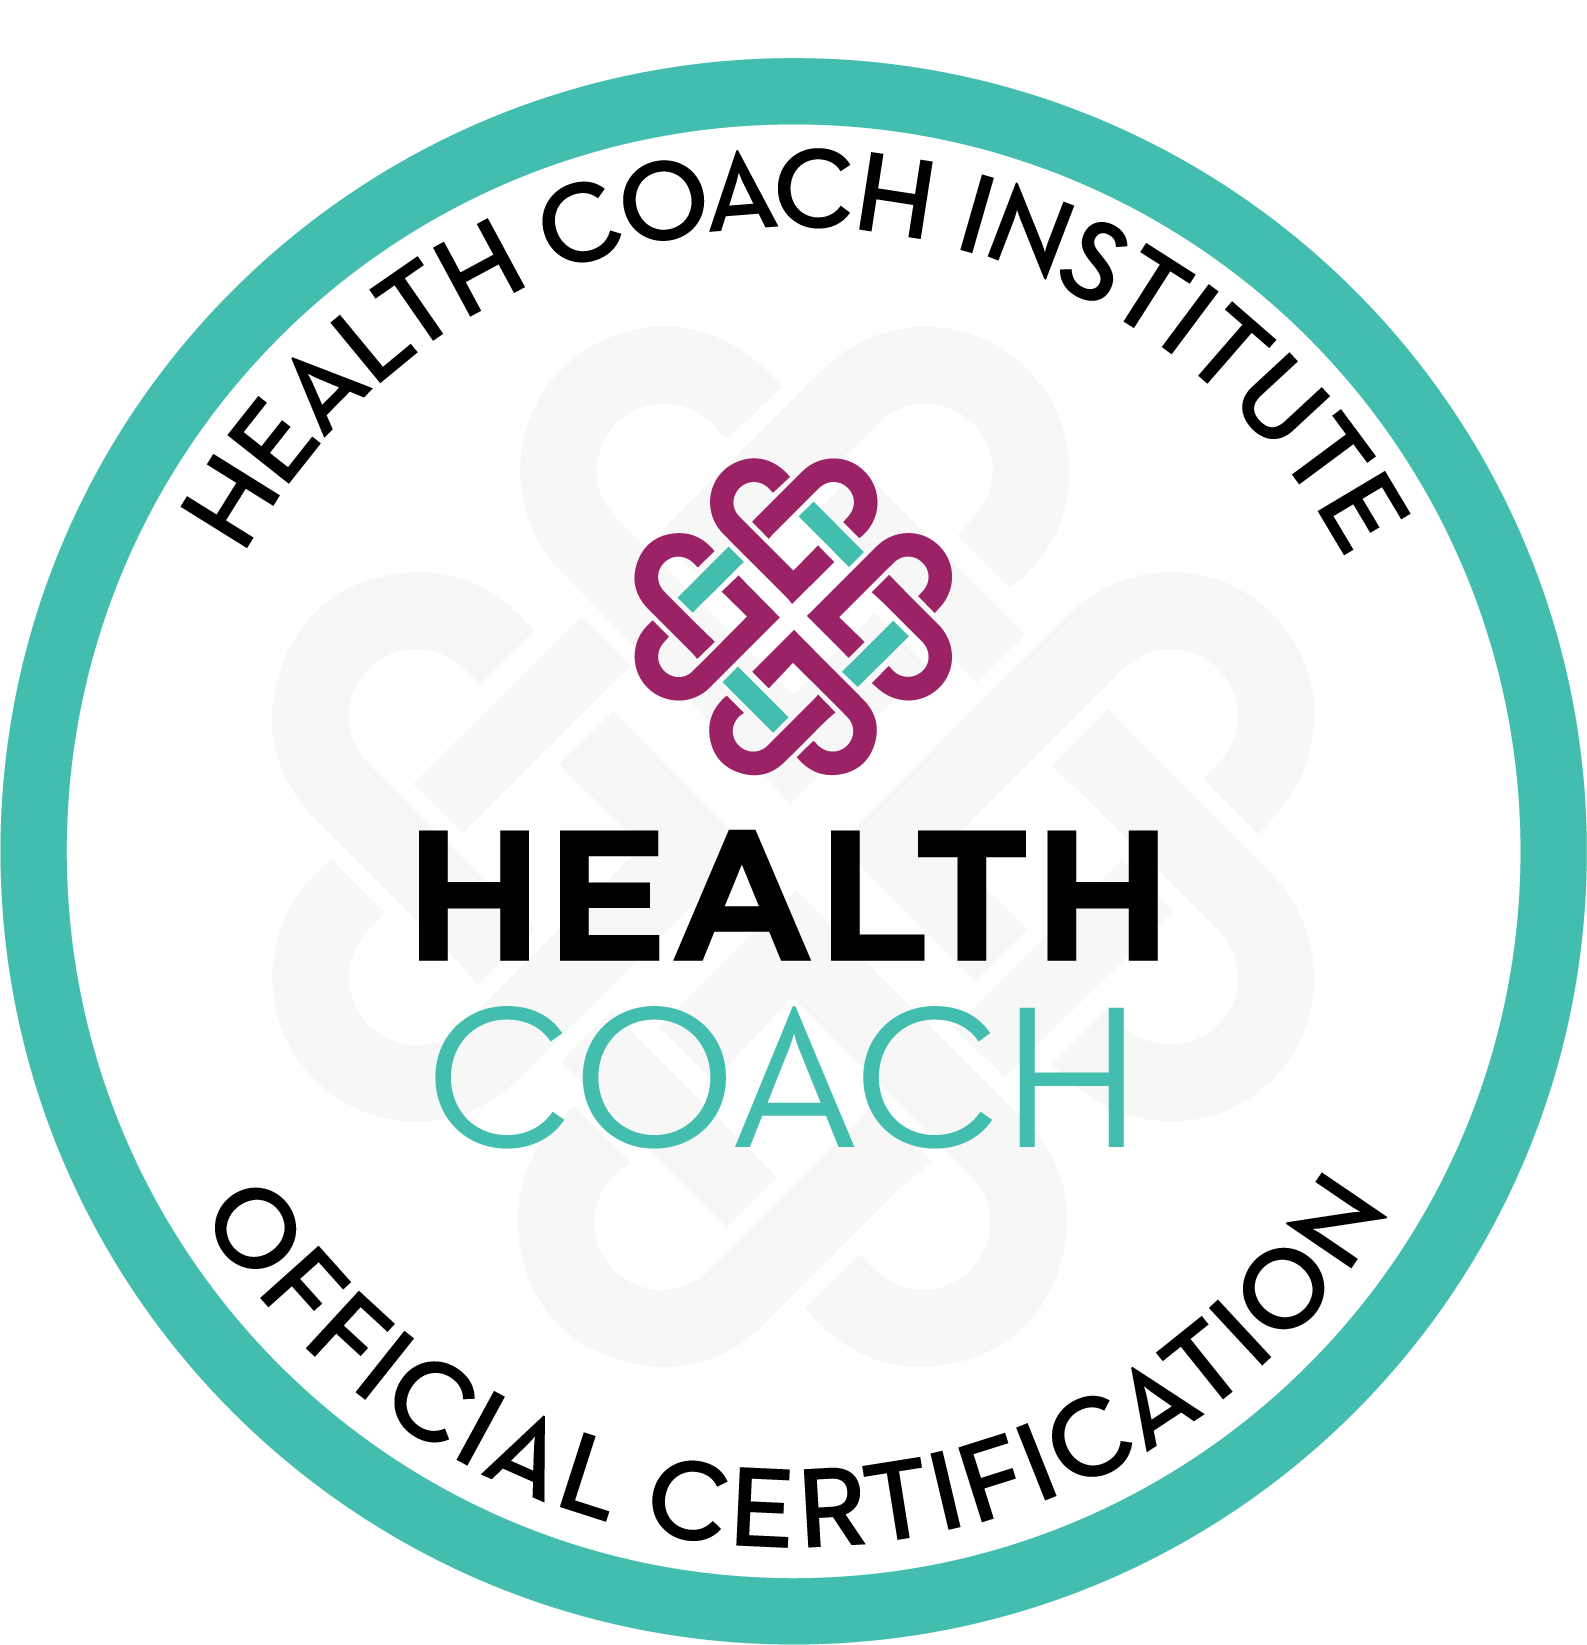 1 bhc_certification_seal.png